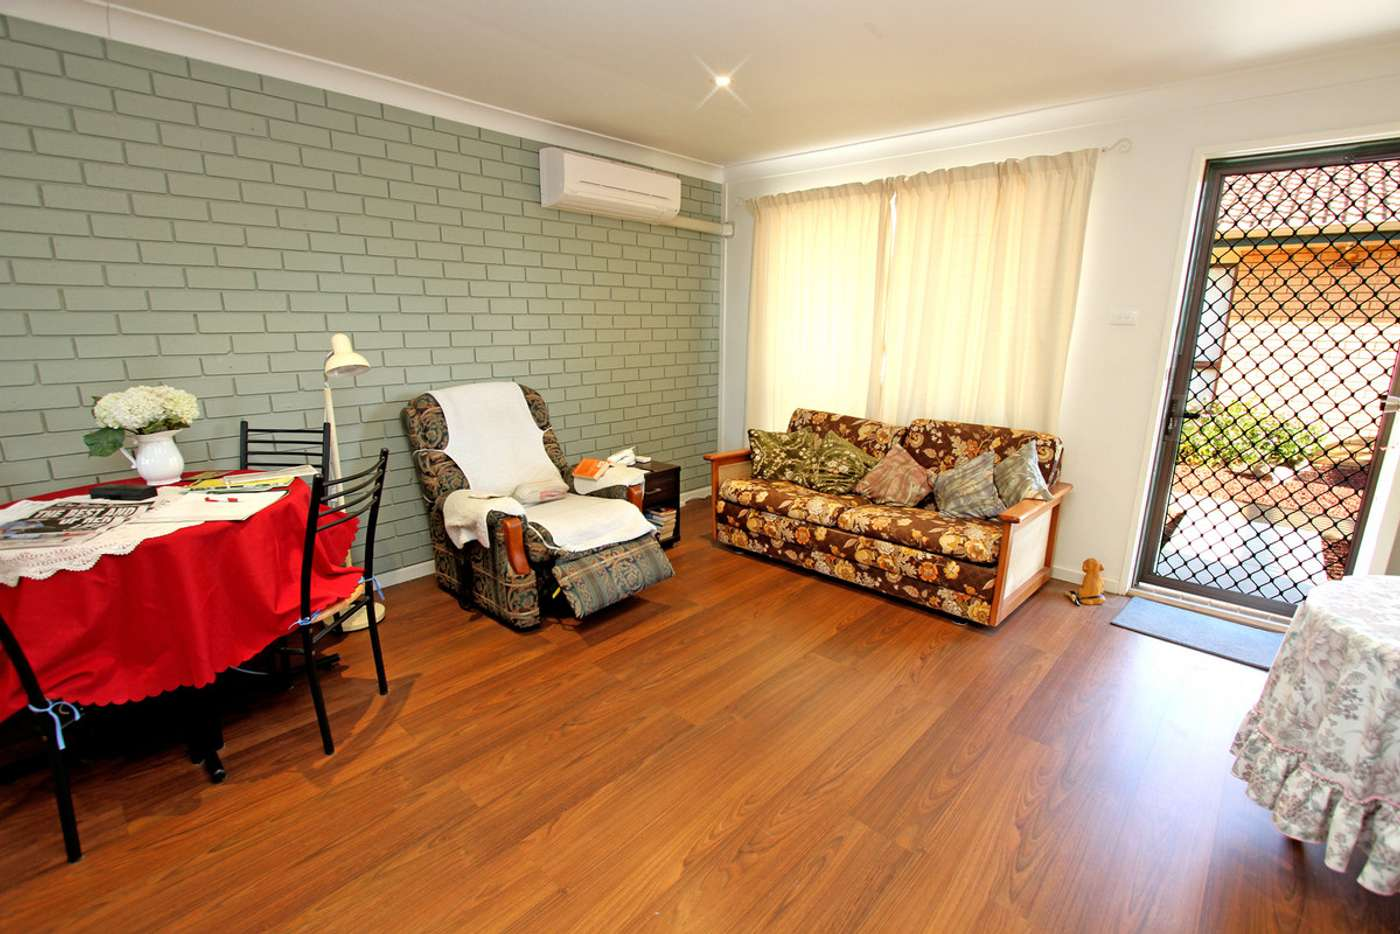 Sixth view of Homely unit listing, 2/18-20 Vestey Street, Wagga Wagga NSW 2650